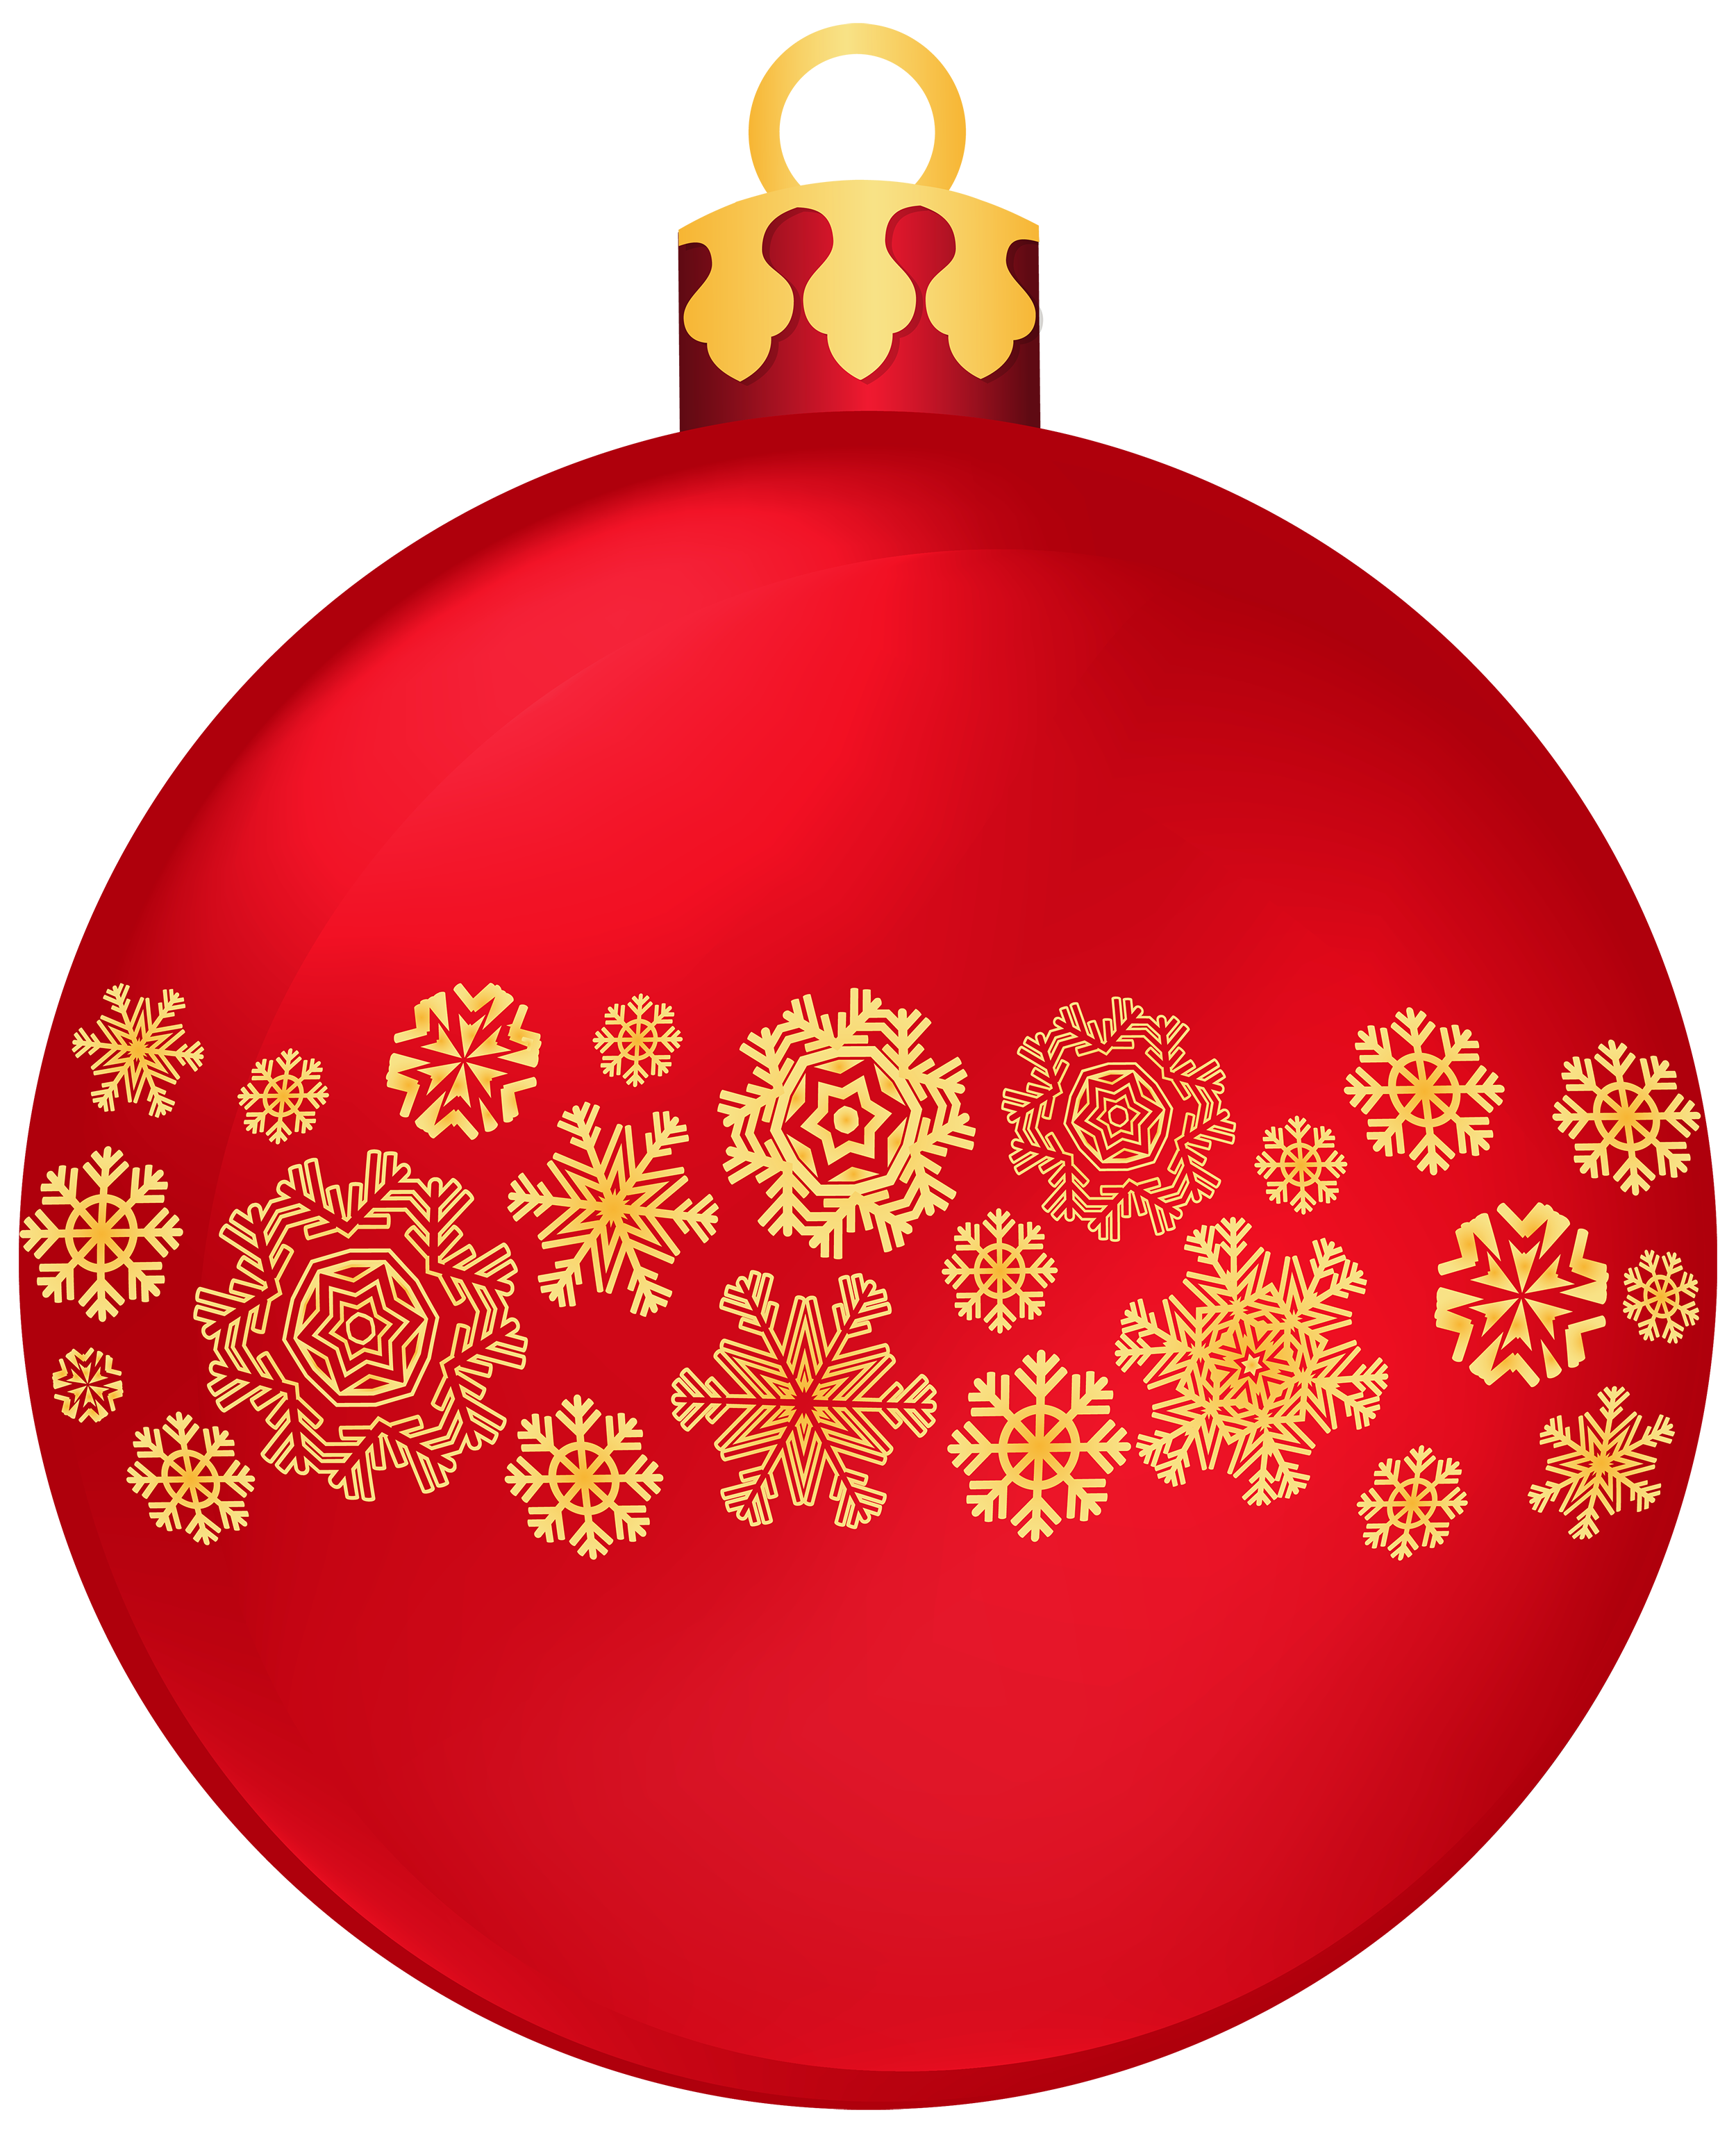 Snowflake stipple clipart clipart library library Red Christmas Ball with Snowflakes PNG Clipart - Best WEB Clipart clipart library library